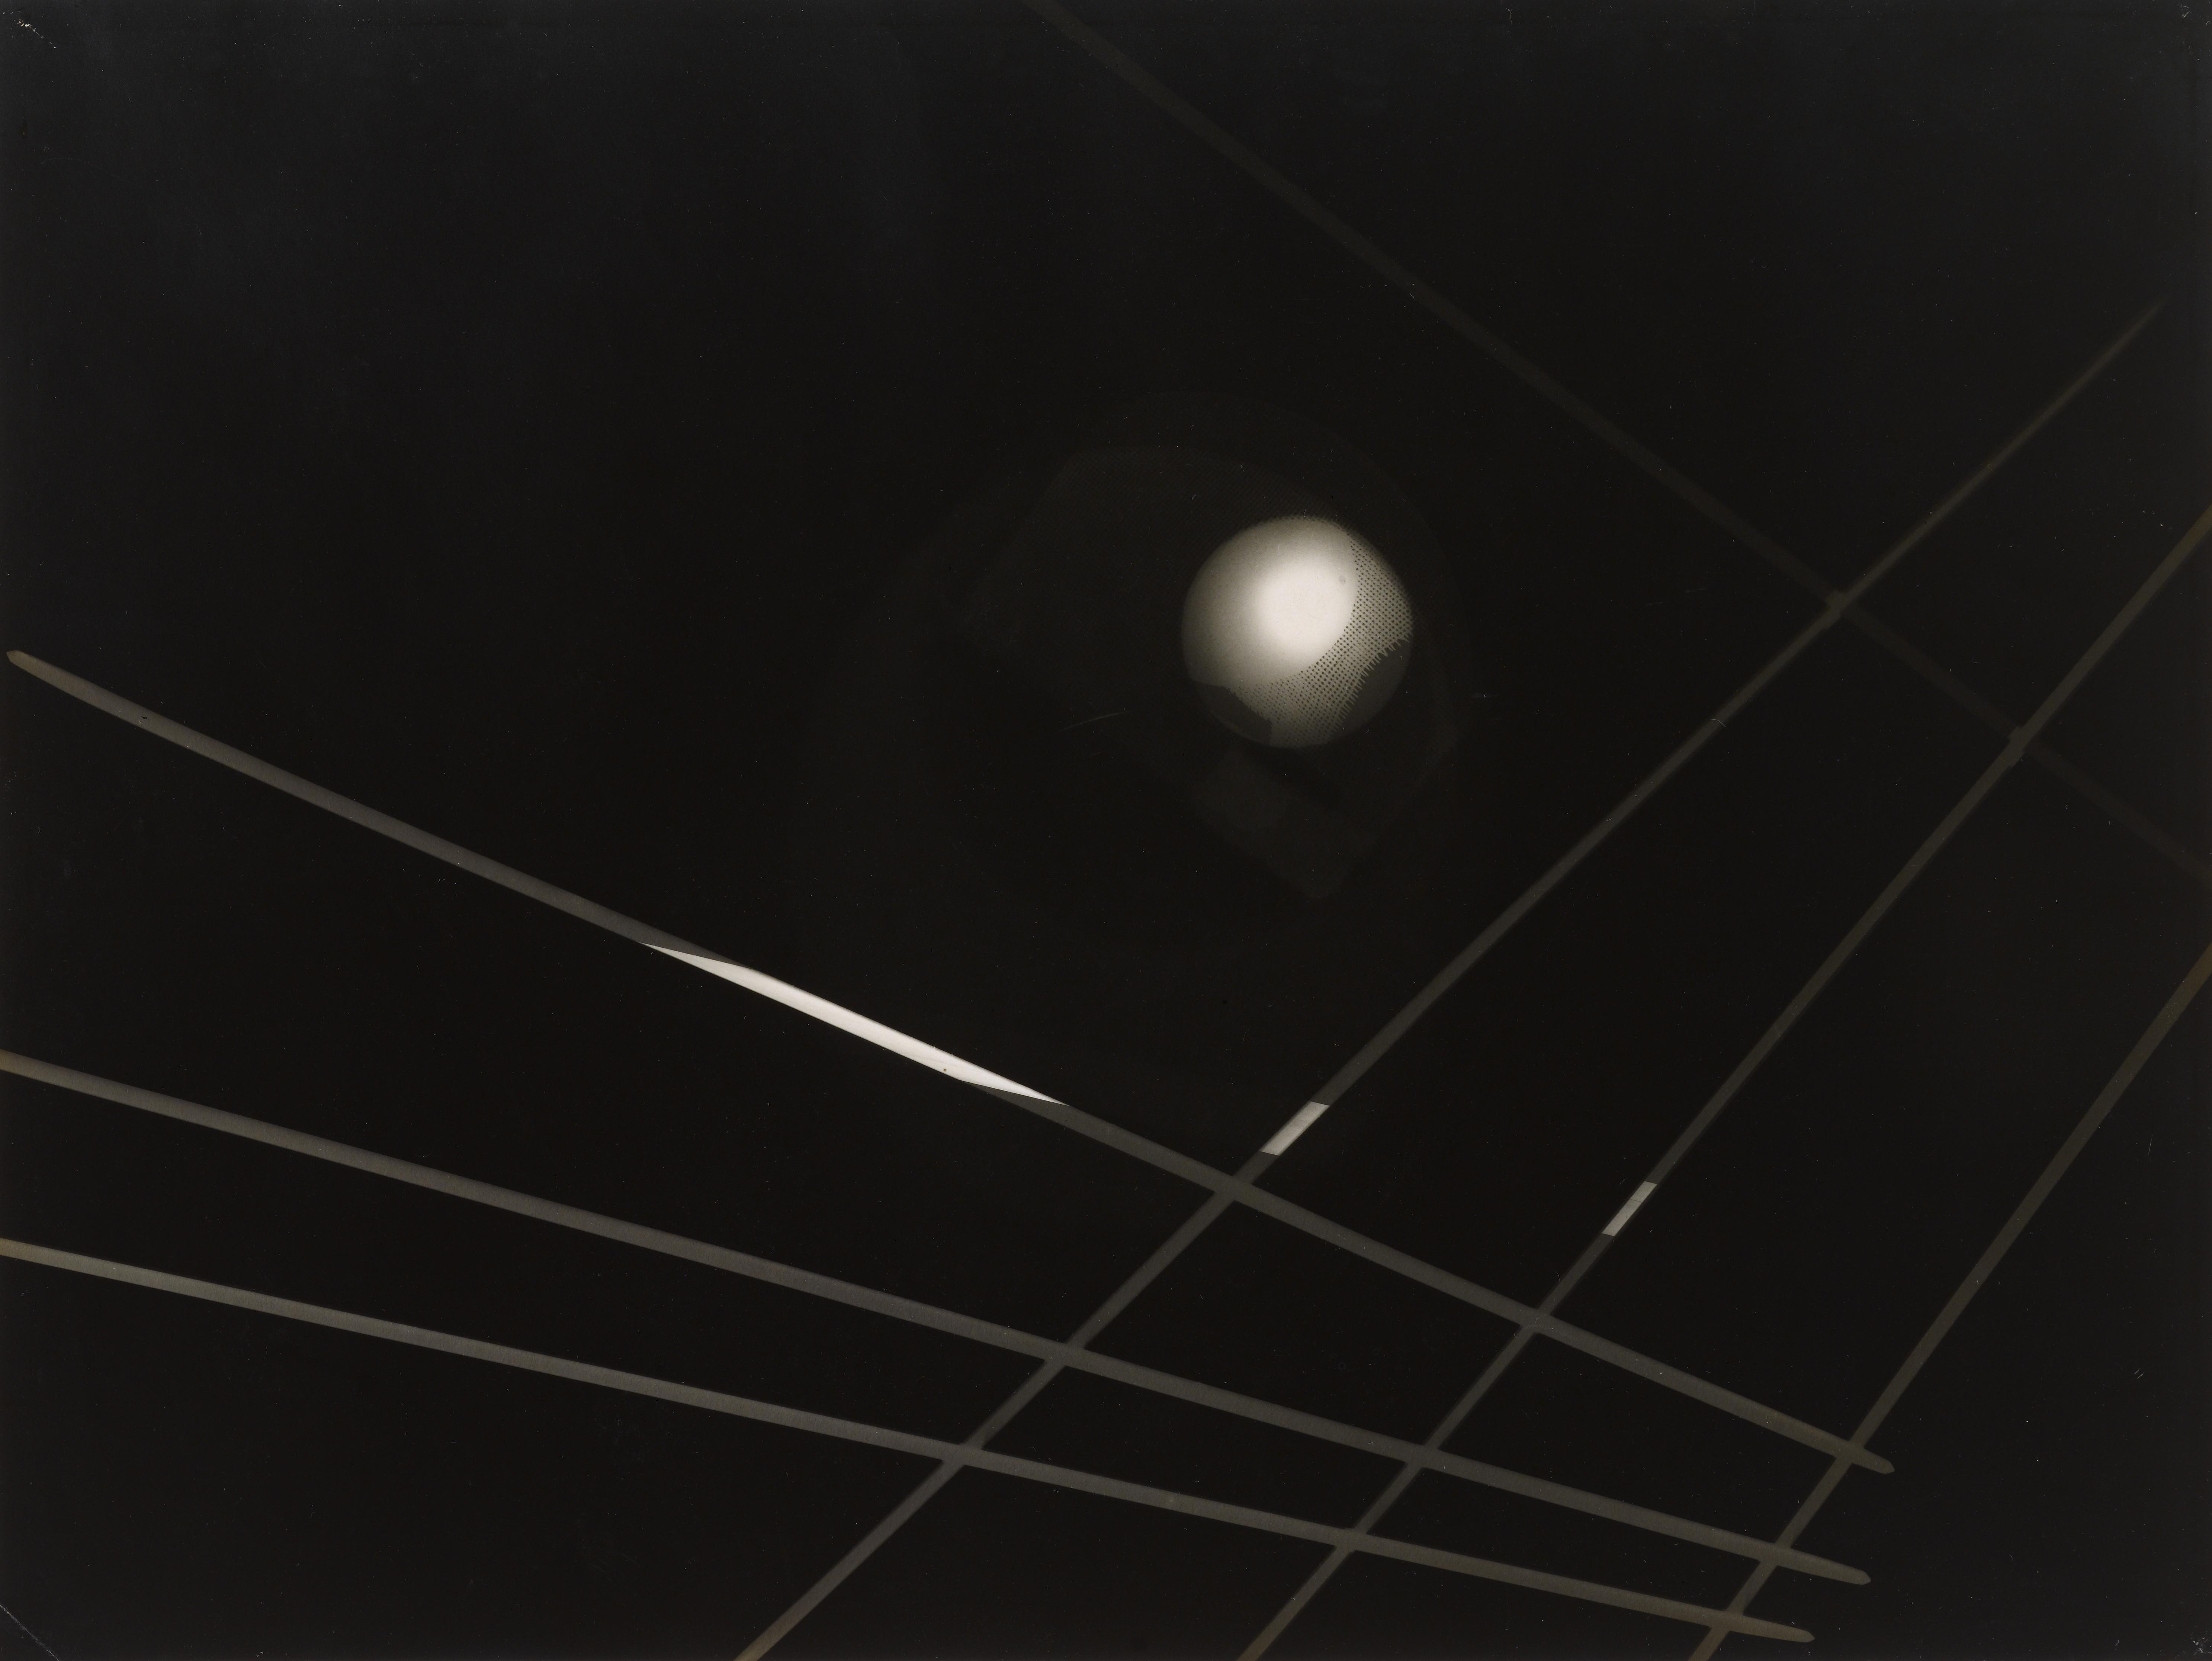 Moholy-Nagy, László (American, born Hungary, 1895-1946) Title Fotogram Work Type Photograph Date 1925 Material Gelatin silver photogram Measurements 7 x 9 5_16 in